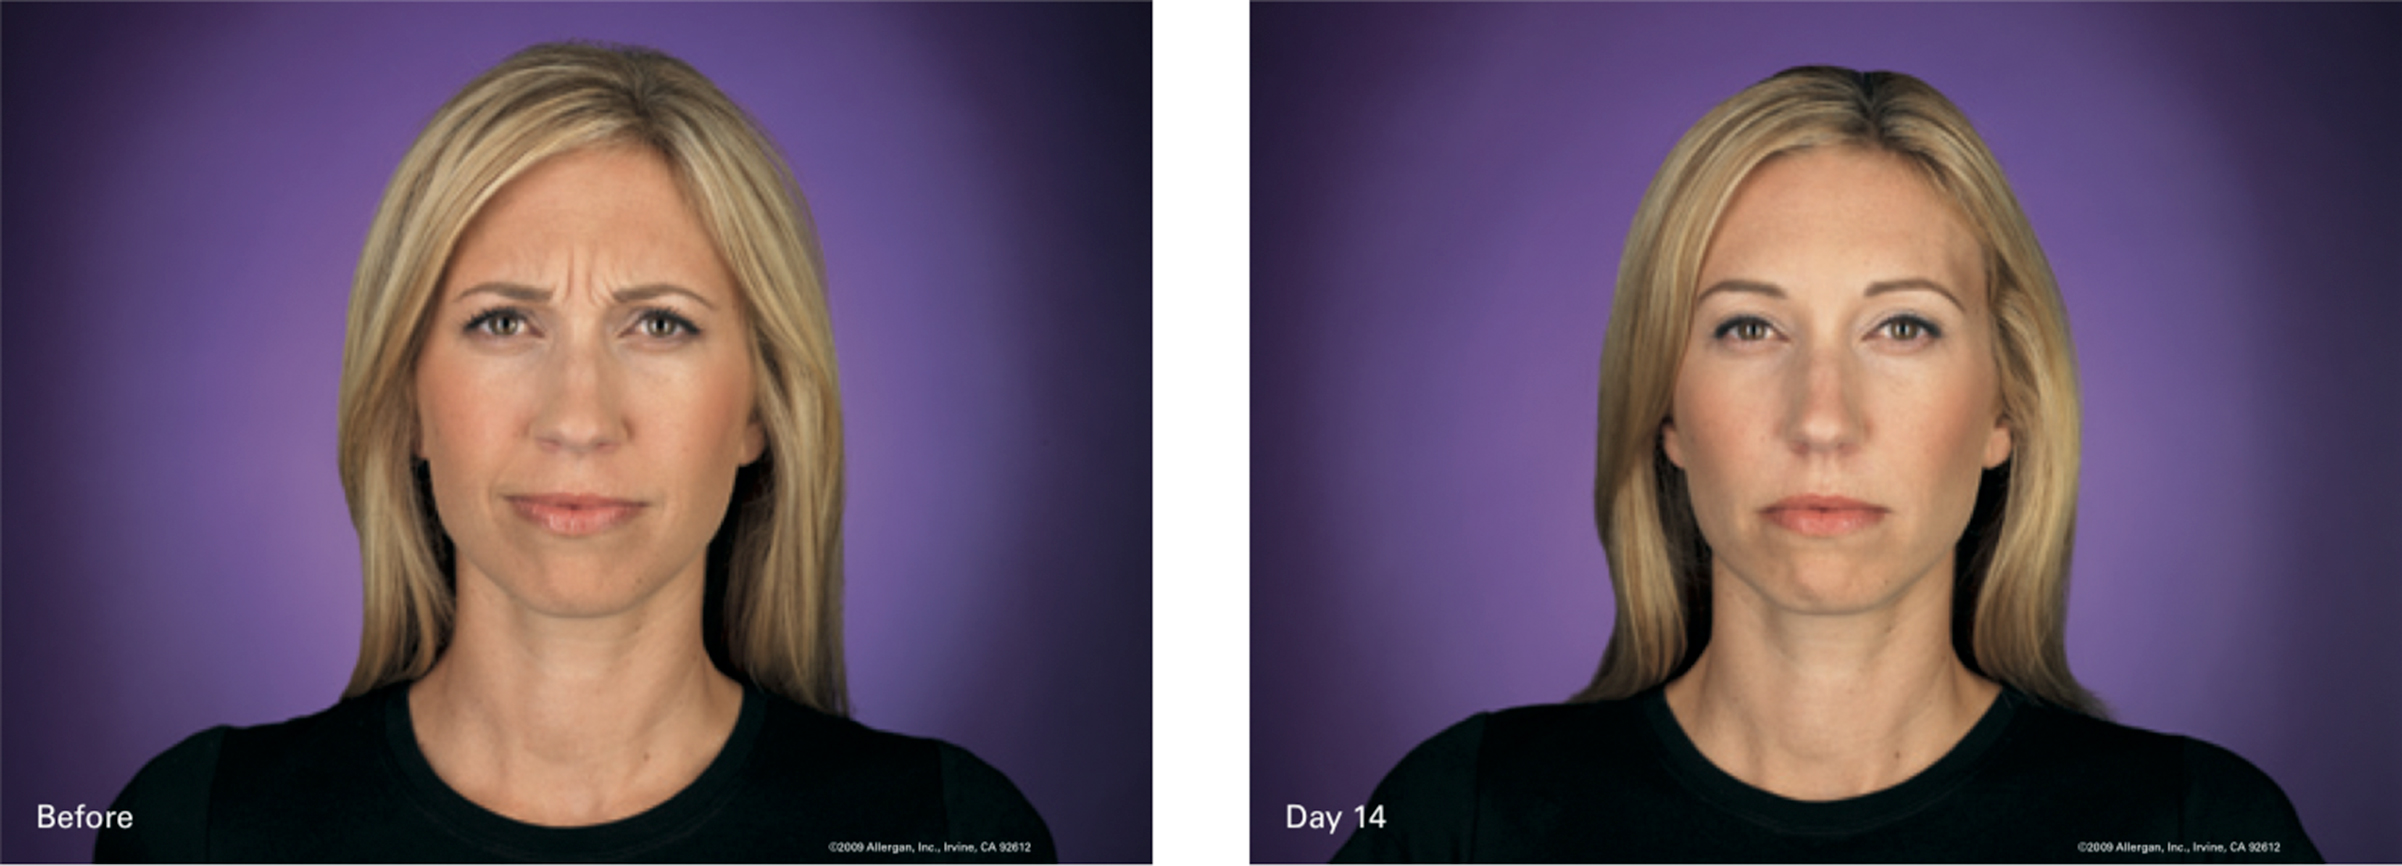 Images of woman before and 7 days after Botox Treatment.